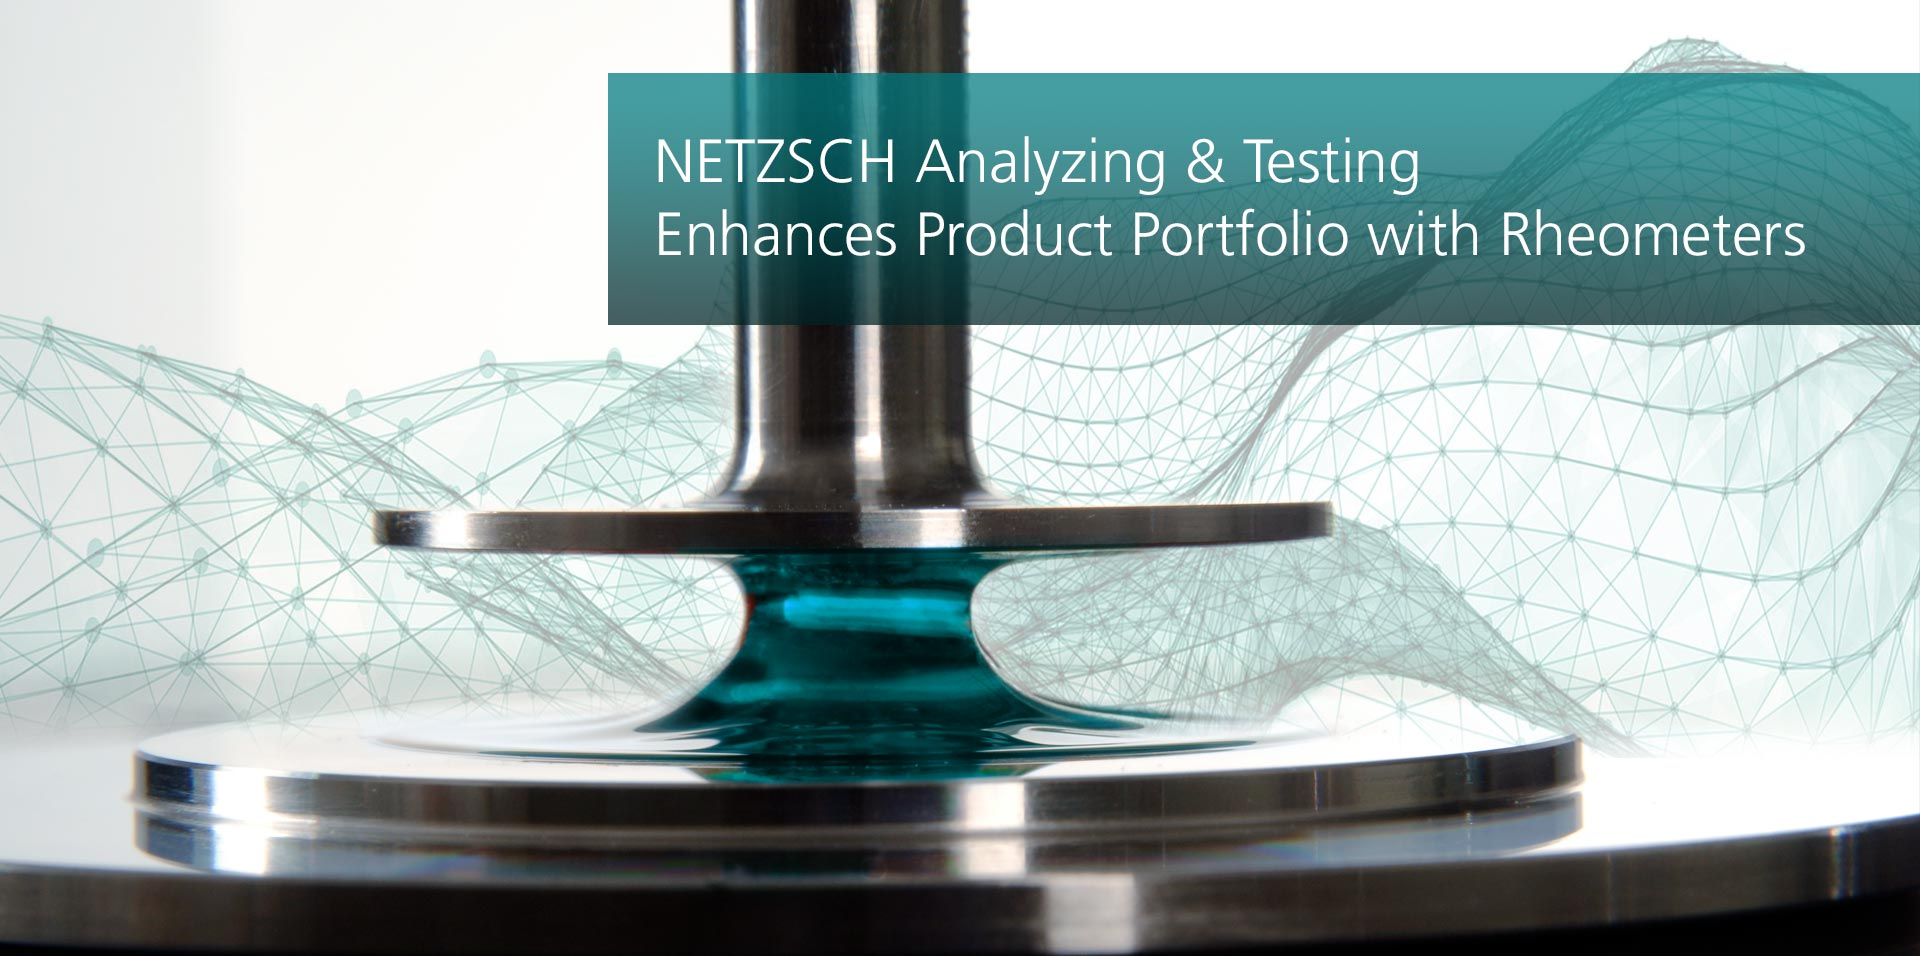 NETZSCH Analyzing & Testing Enhances Product Portfolio with Rheometers